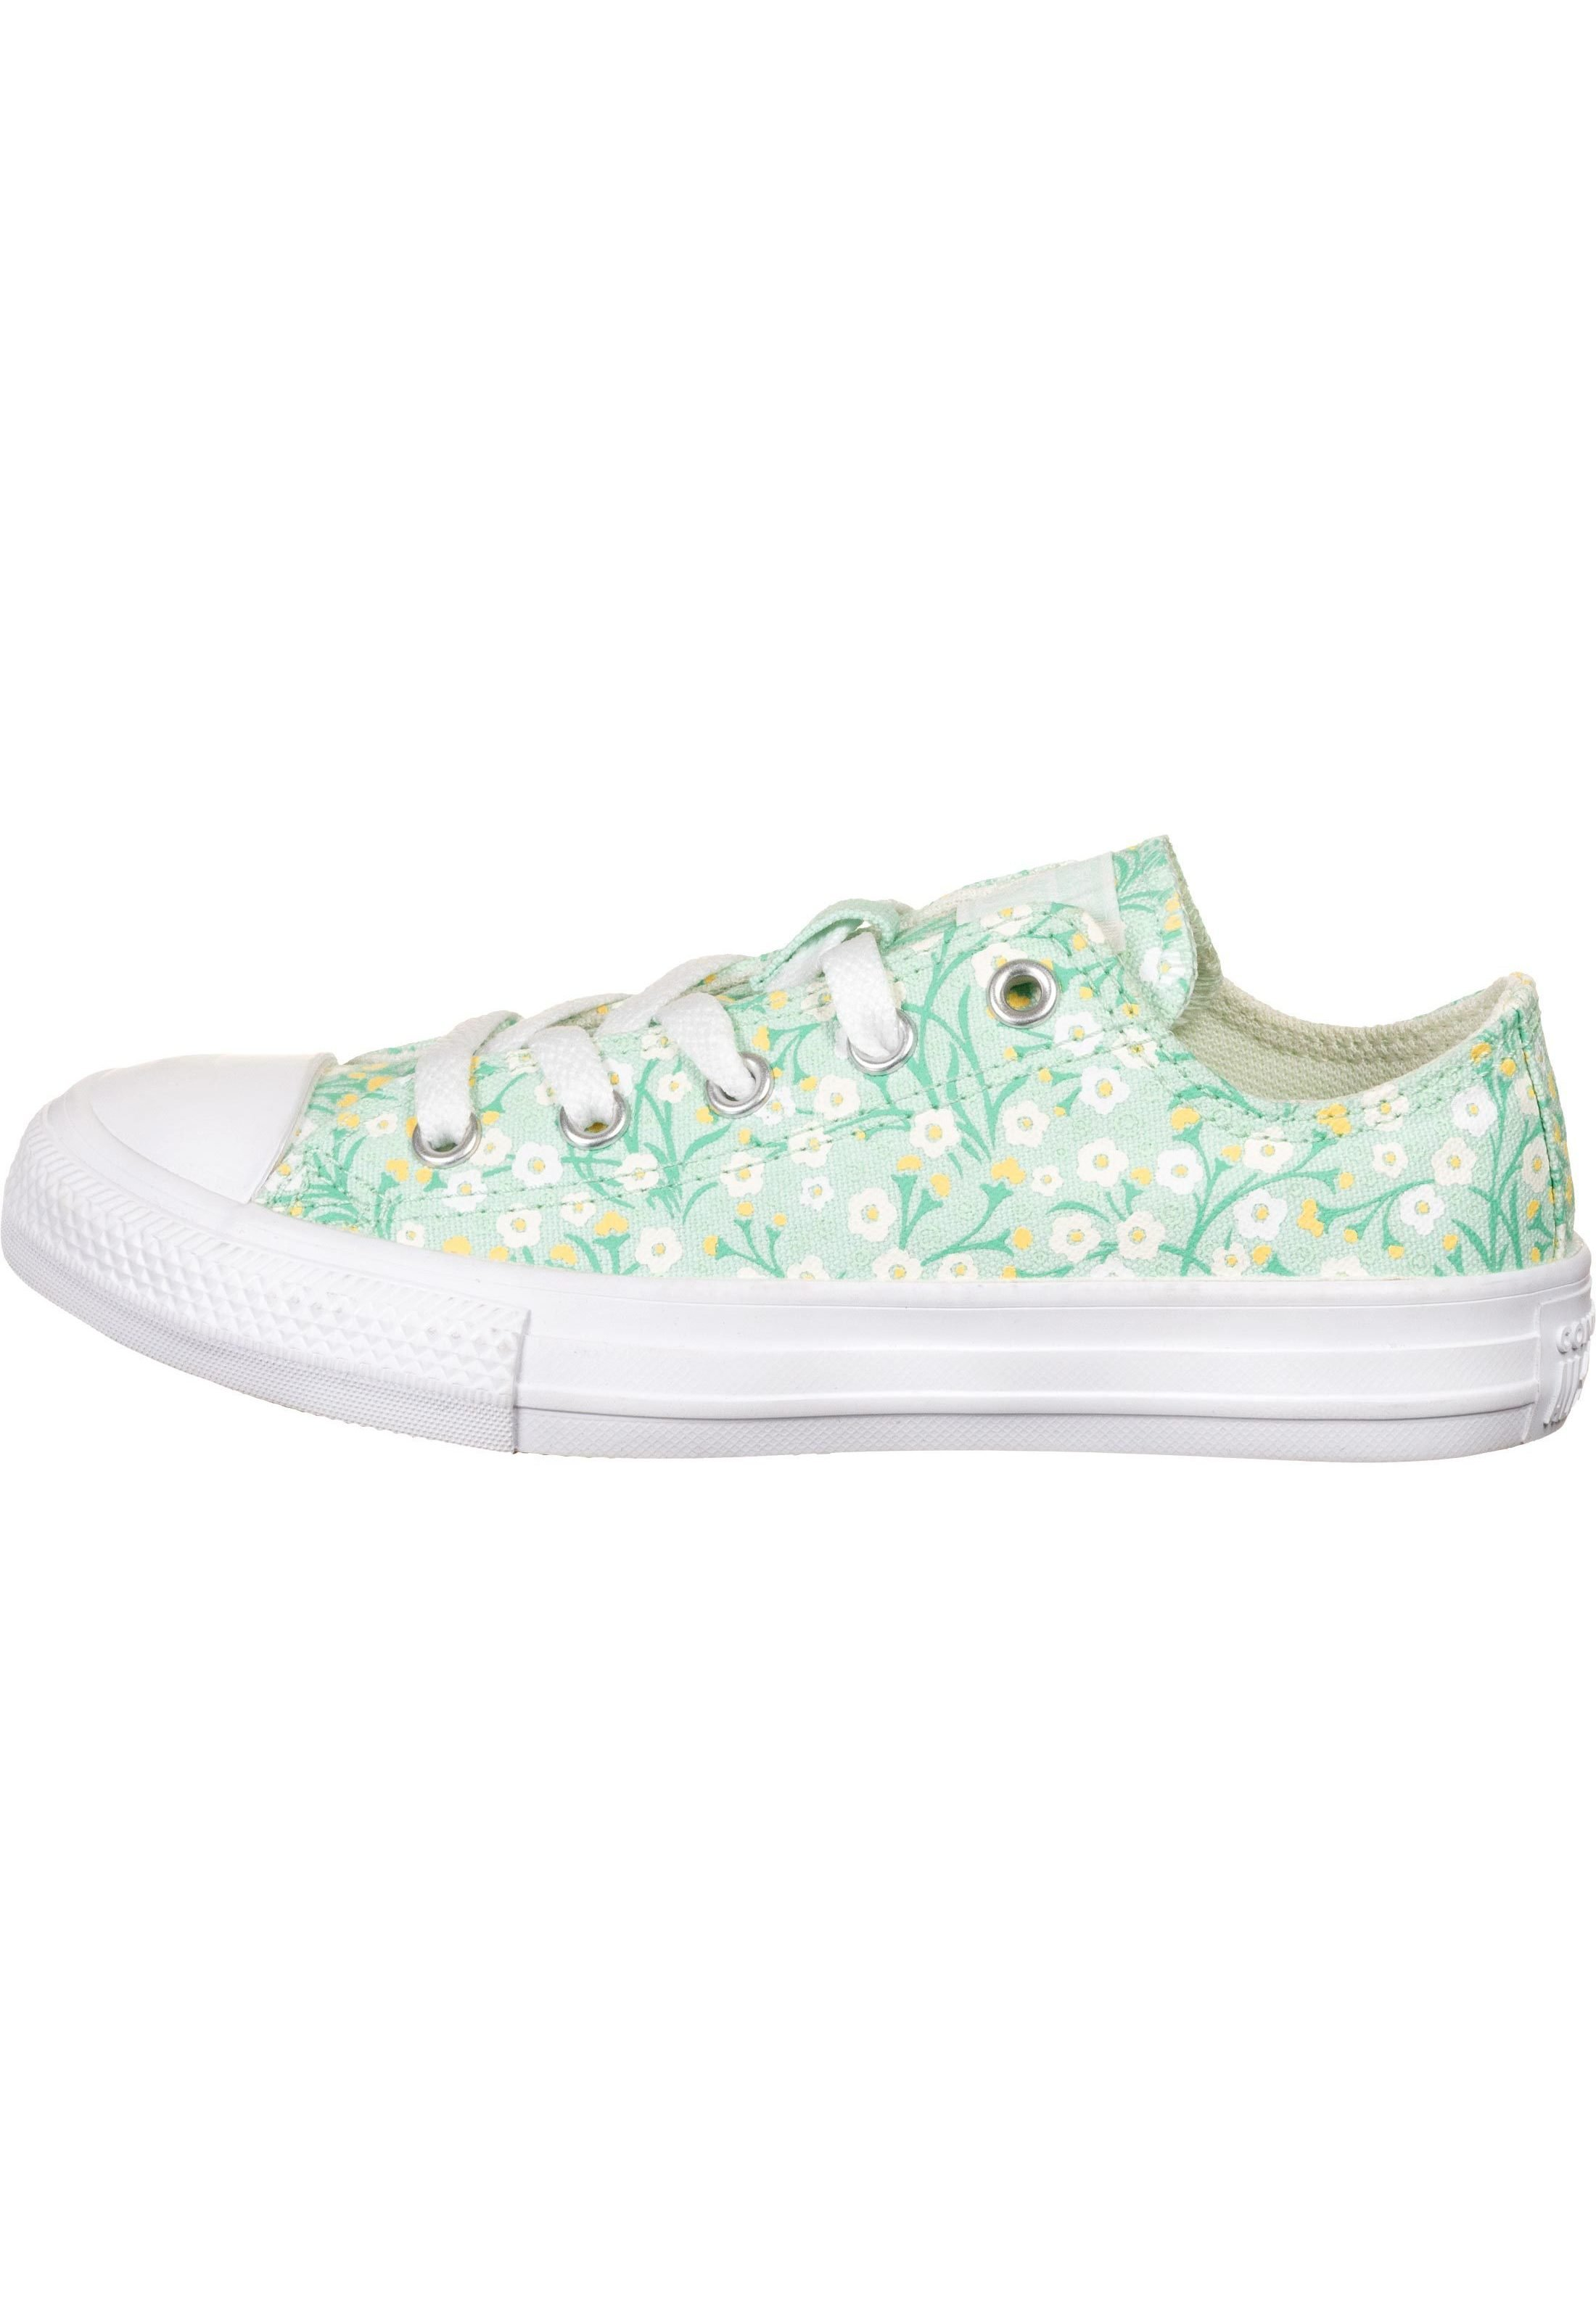 CHUCK TAYLOR ALL STAR Baskets basses ocean mint topaz gold white